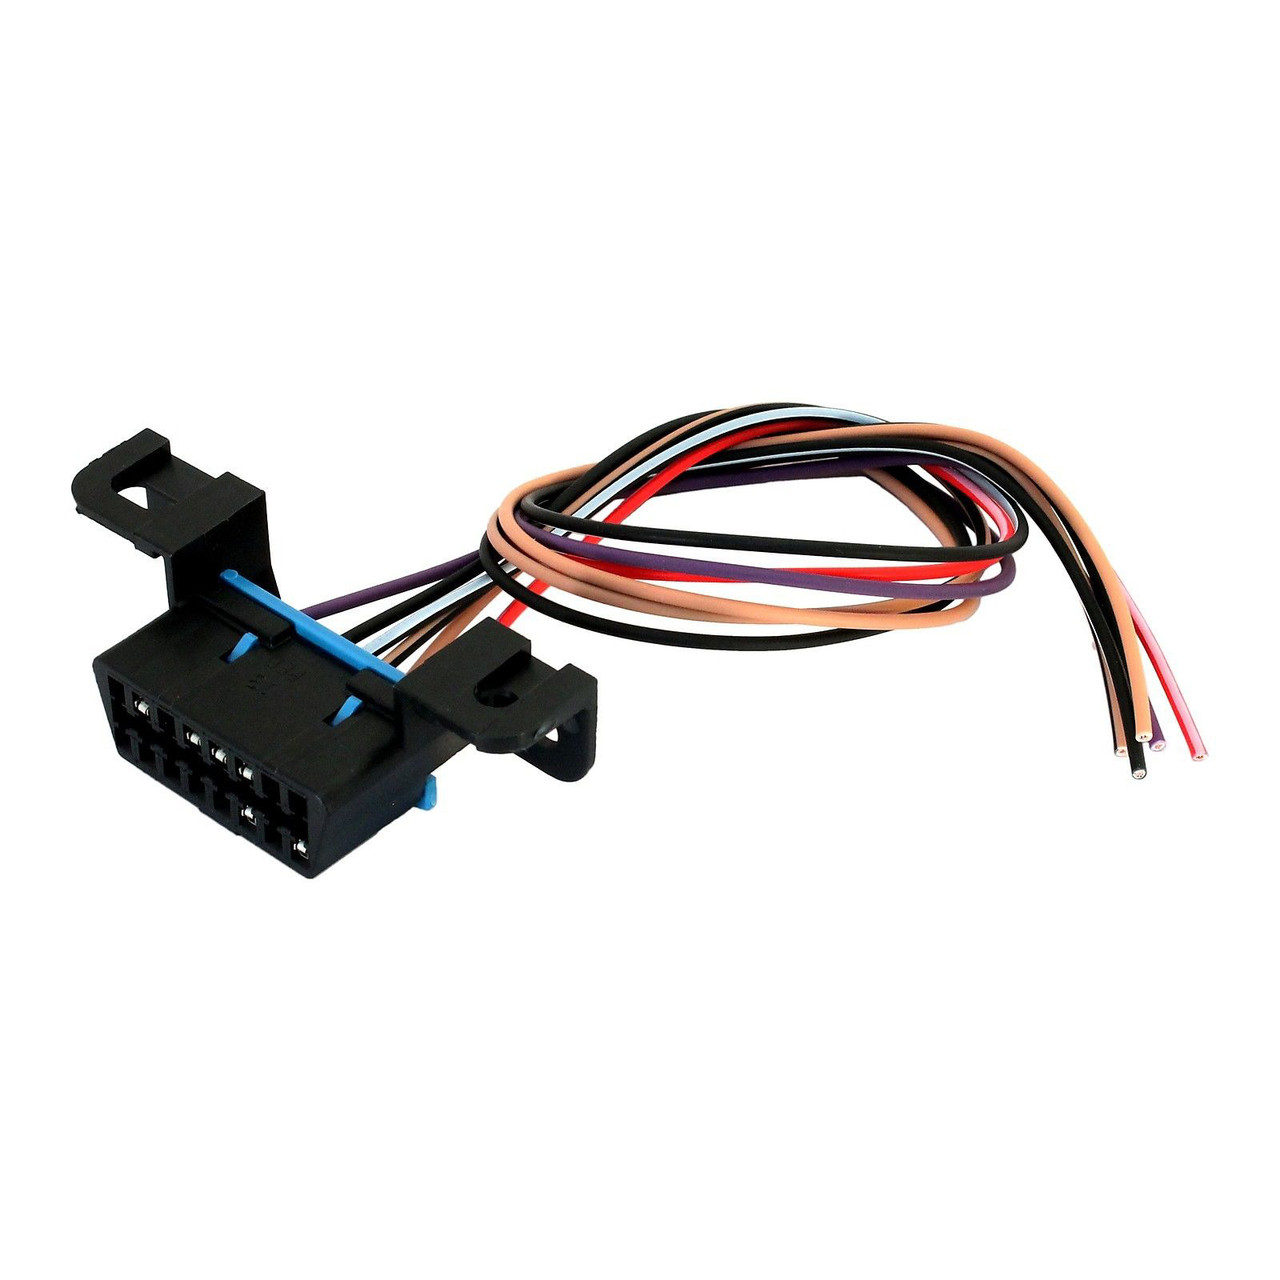 wiring harness connector ends residential electrical symbols \u2022 electrical harness connectors obdii obd2 j1962 class 2 can bus wiring harness connector pigtail rh obdinnovations com oem wiring harness connectors polaris wiring harness connectors